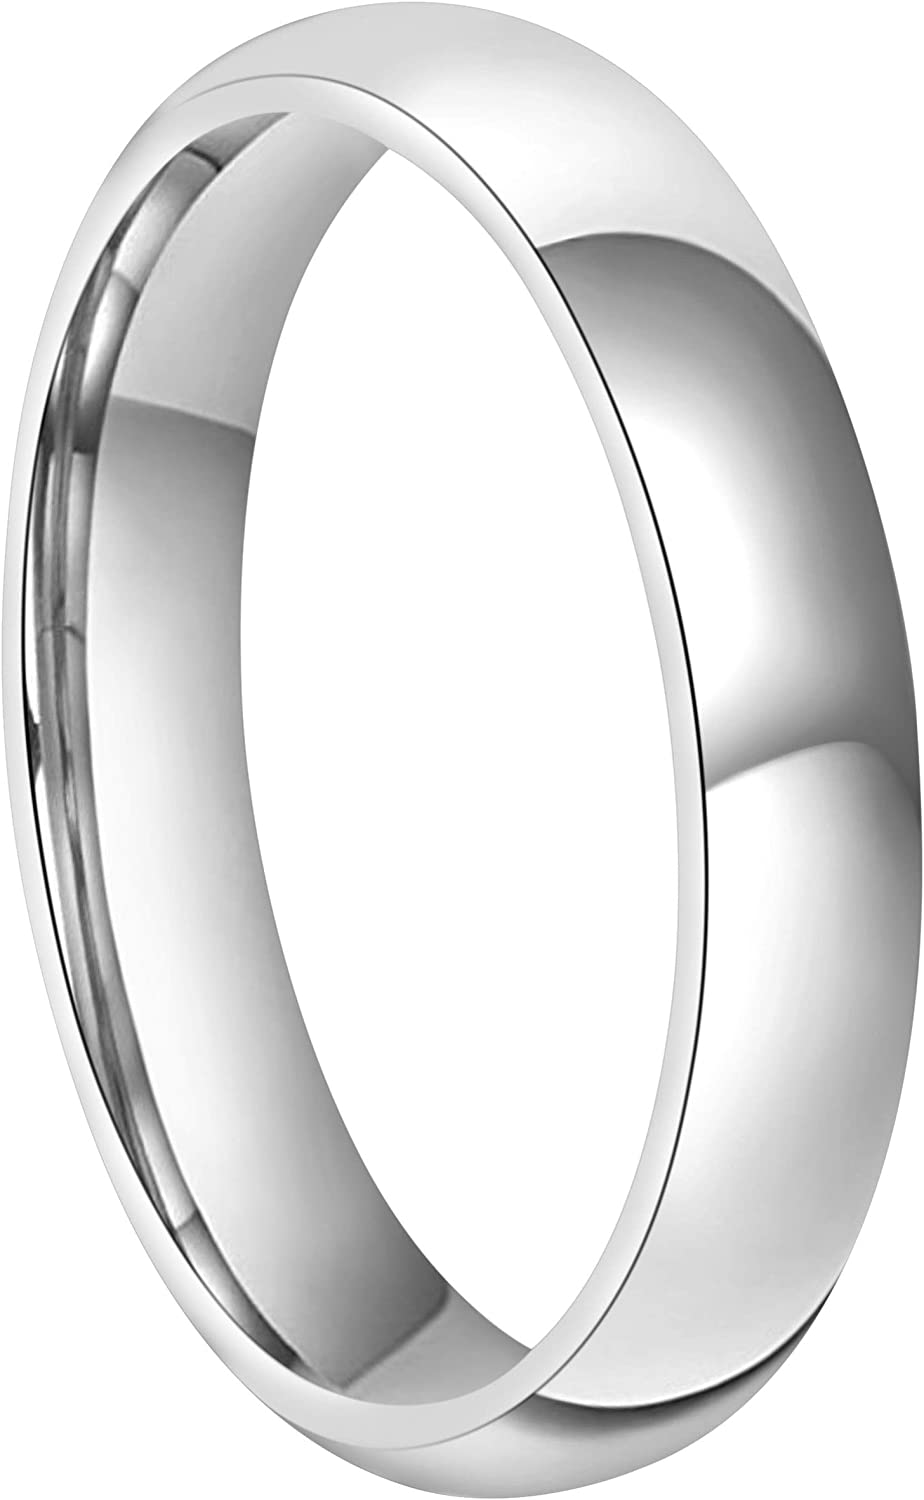 RoyalKay 4mm 6mm 8mm Titanium Wedding Band Ring Men Women Plain Dome Rounded High Polished Comfort Fit Size 4 To 16